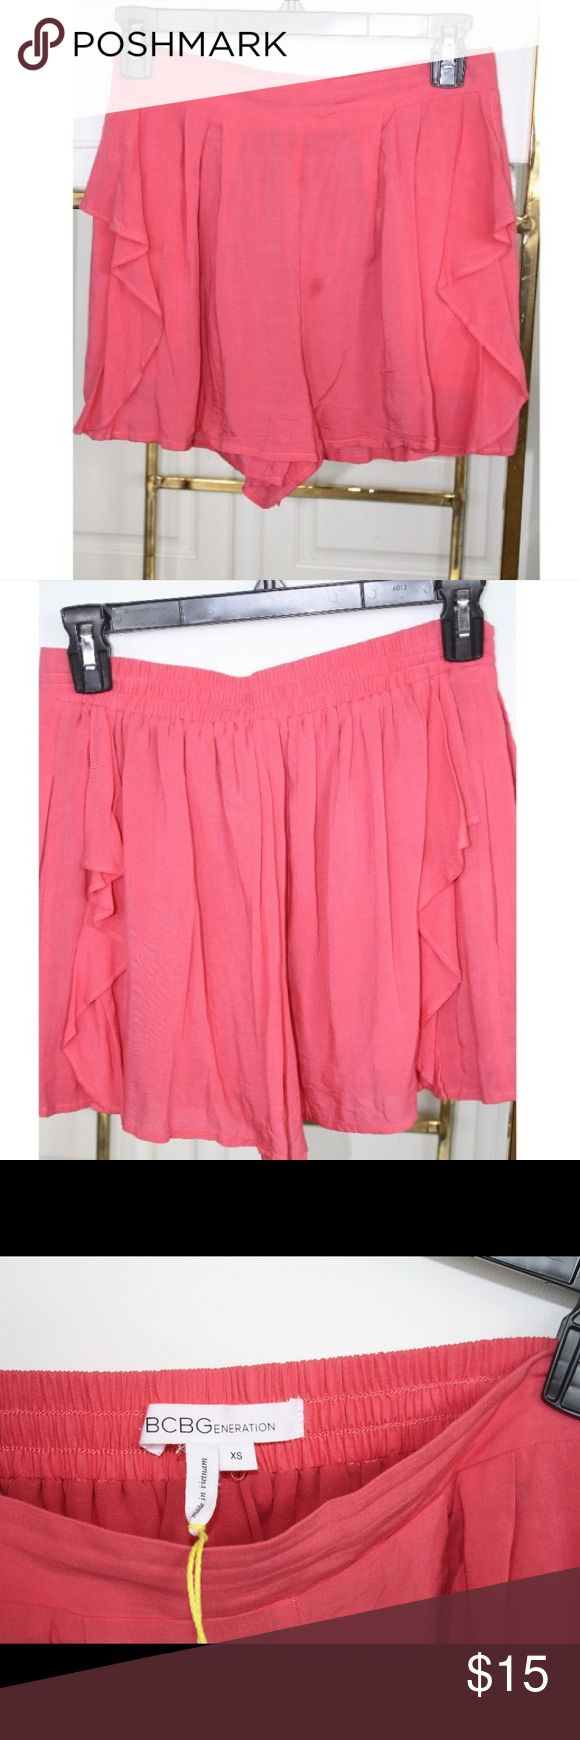 BCBG pink ruffle shorts Very flowy and fun shorts. Great for summer. Stain on he front as shown in pics but shouldn't be permanent and can probable get off in the wash BCBGeneration Shorts